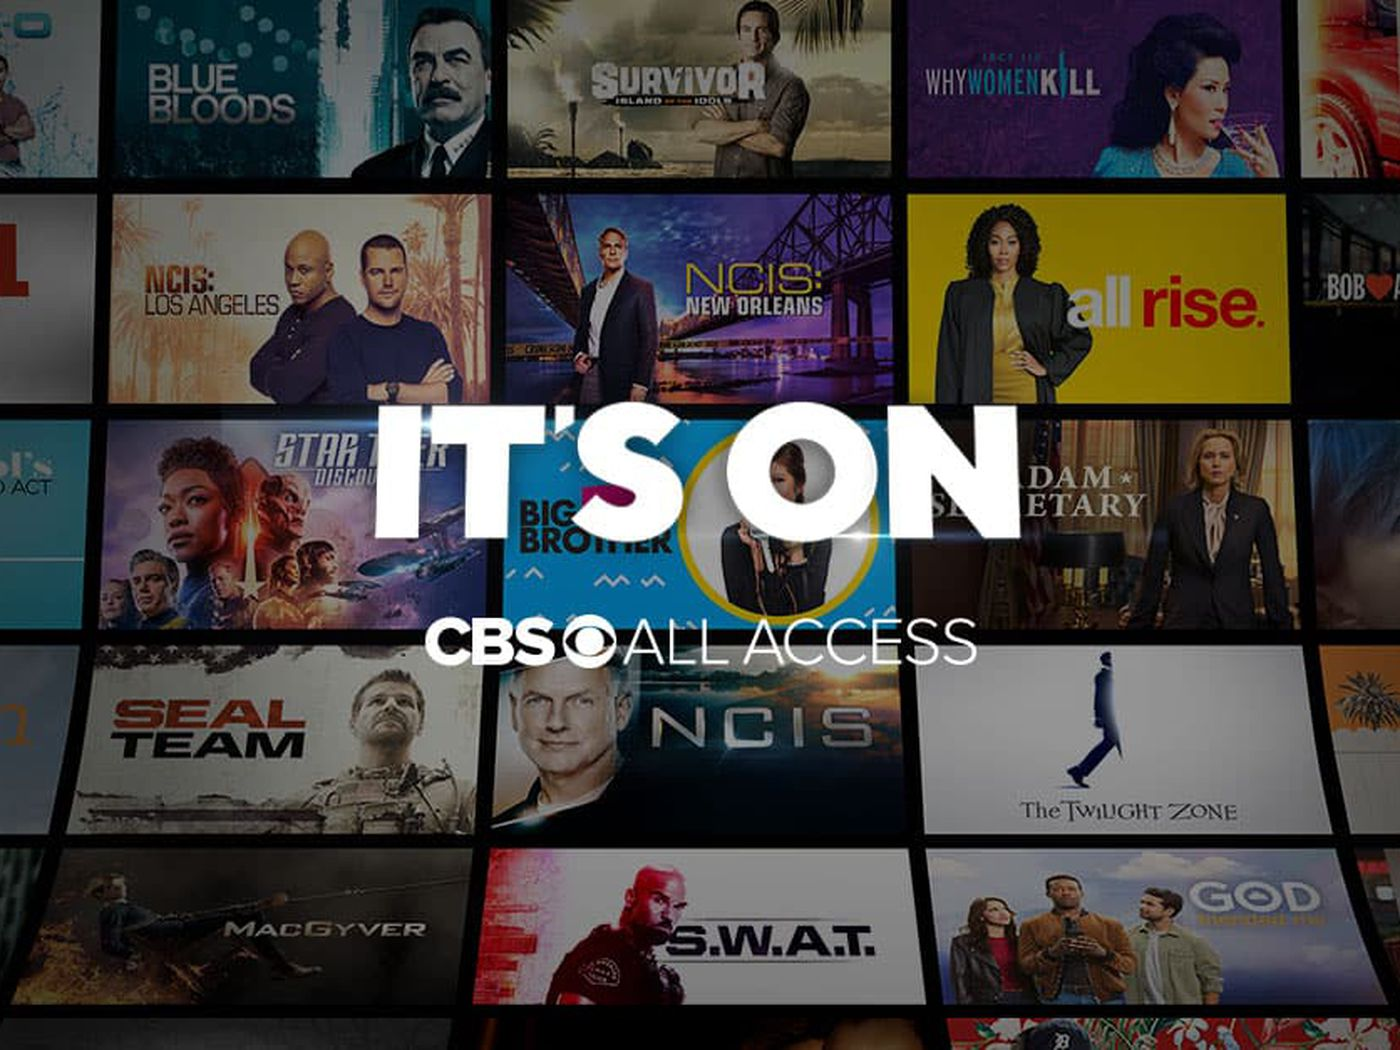 Major Cbs All Access Changes Coming This Summer As Company Speeds Up Relaunch The Verge